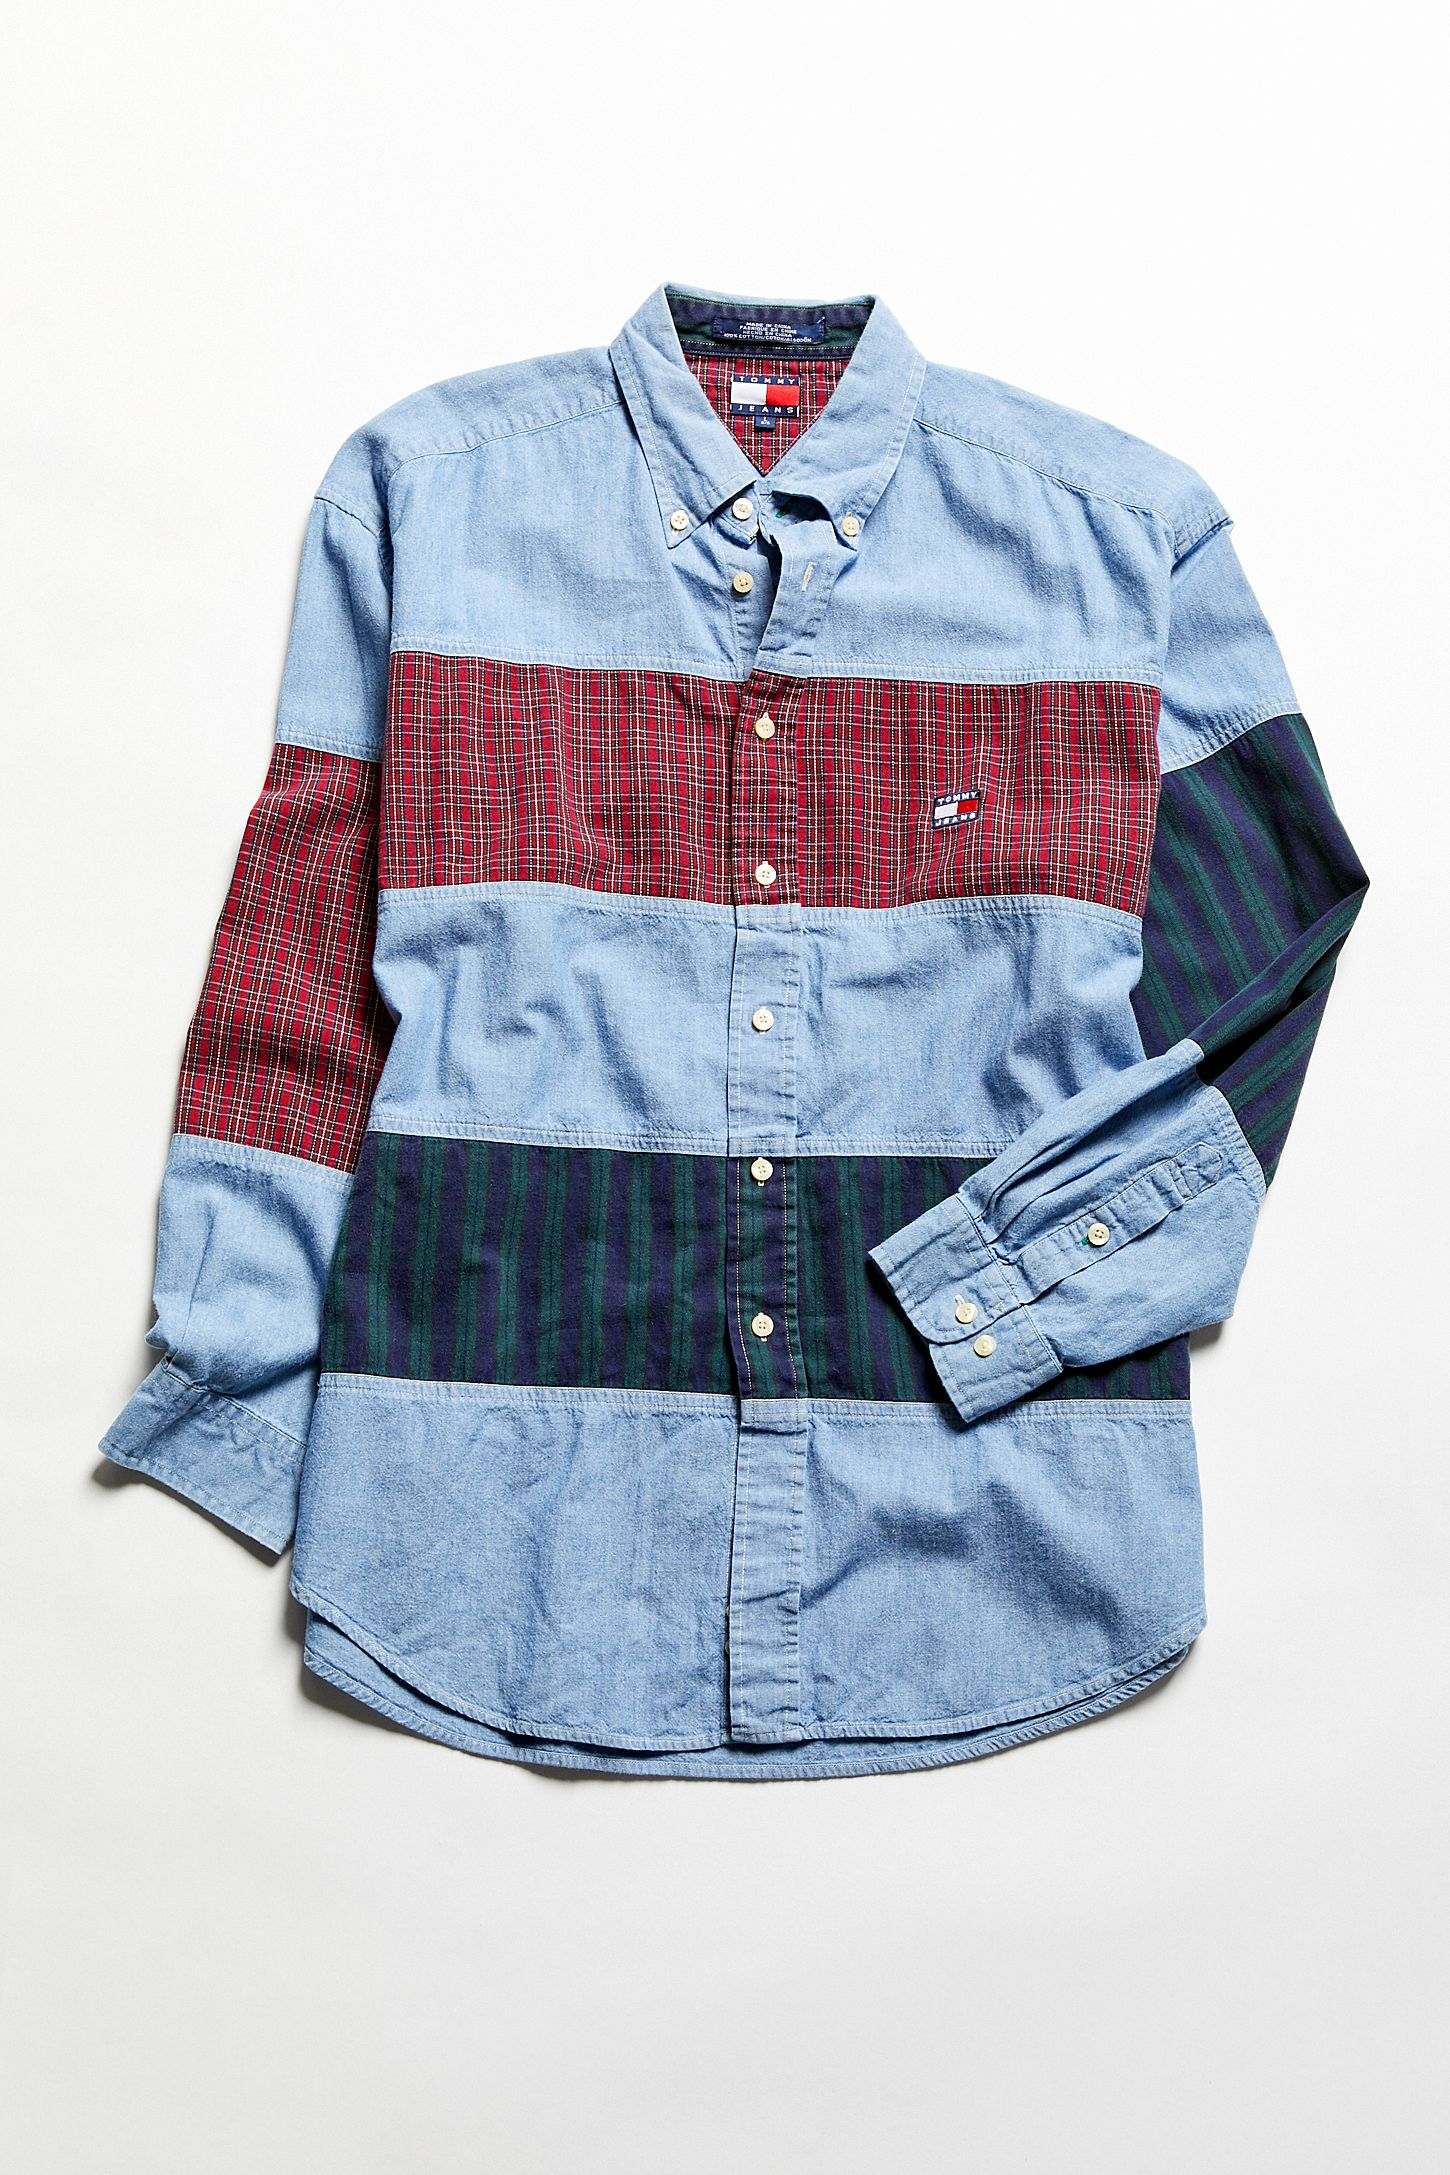 1a0434c3 Vintage Tommy Hilfiger Oversized Plaid Stripe Chambray Button-Down ...